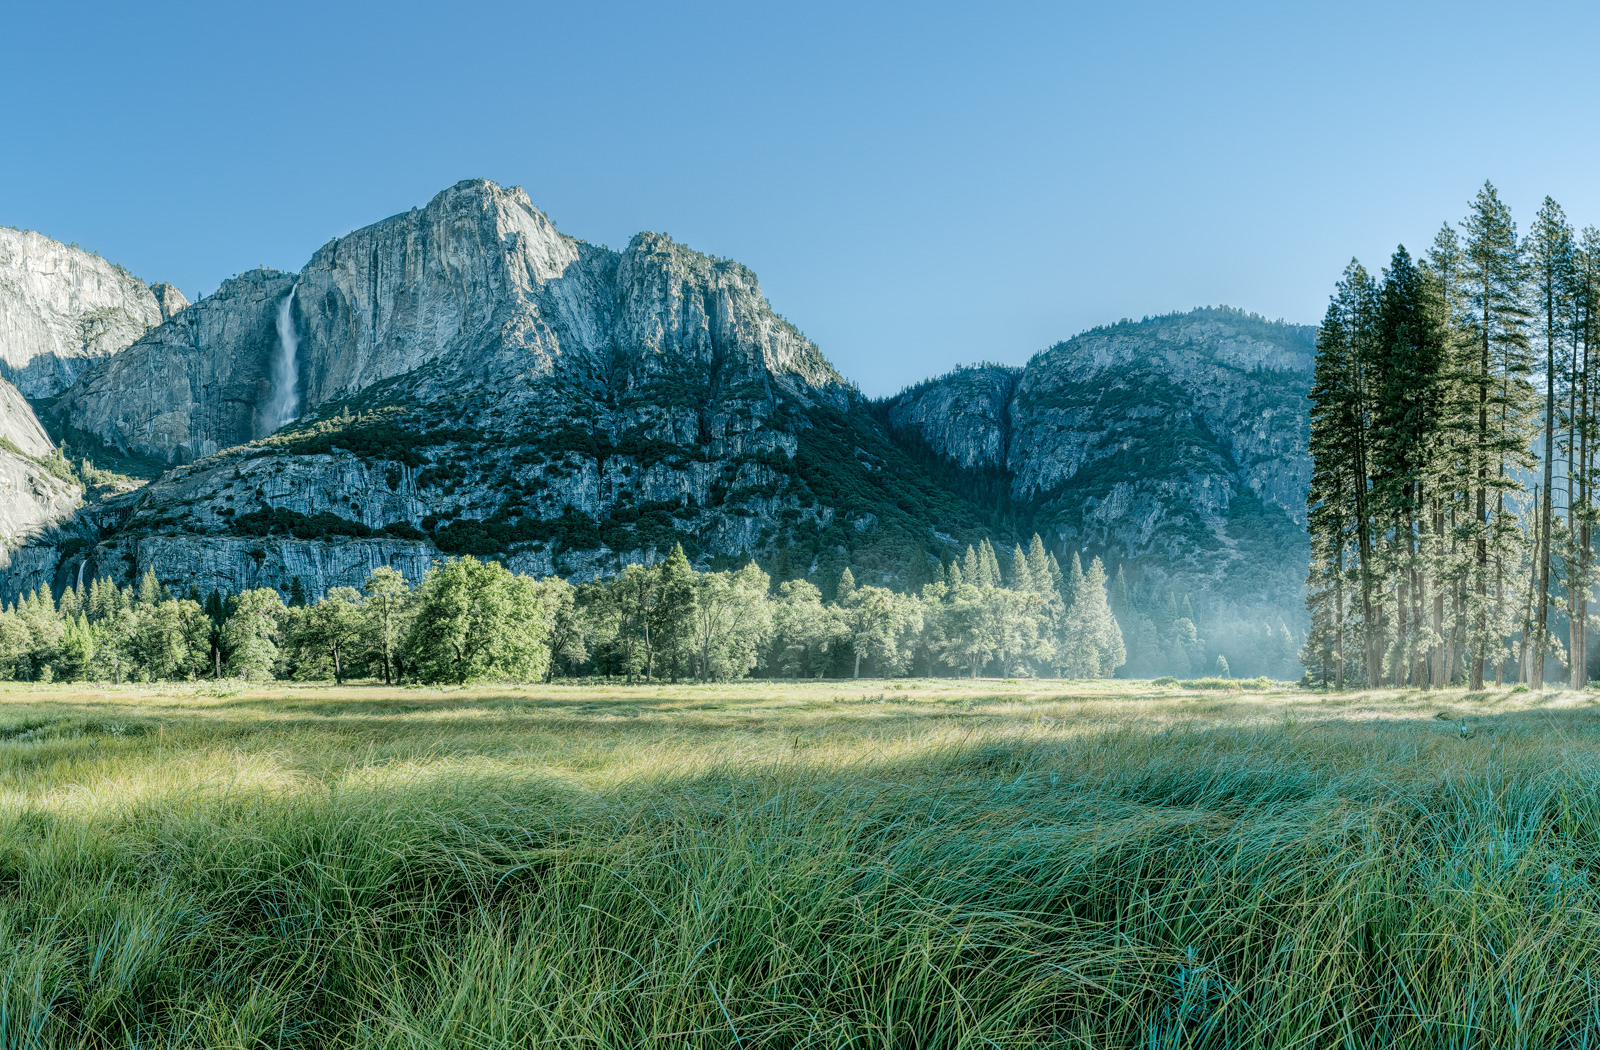 Yosemite Landscape Photography: Cook's Meadow